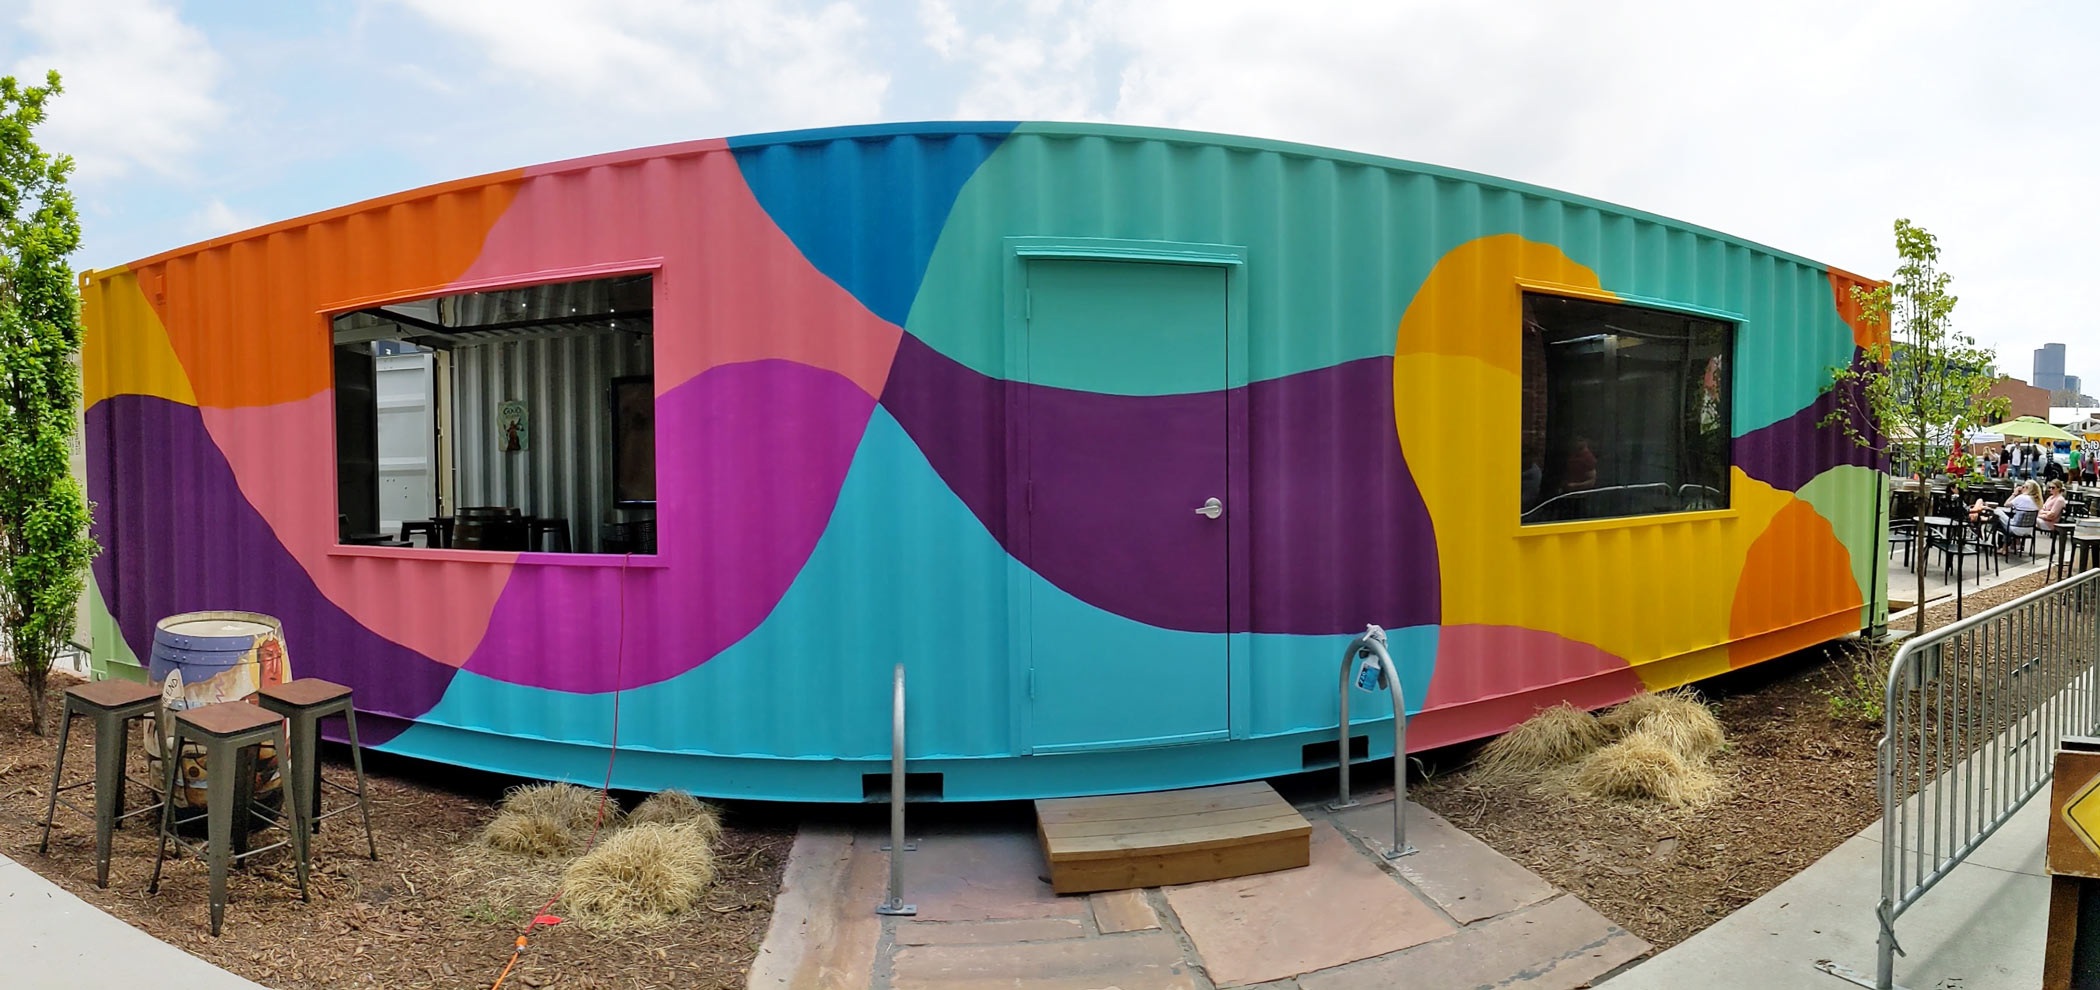 An abstract mural depicting colorful blobs painted on a shipping container in front of Odell Brewing Company, Denver, Colorado